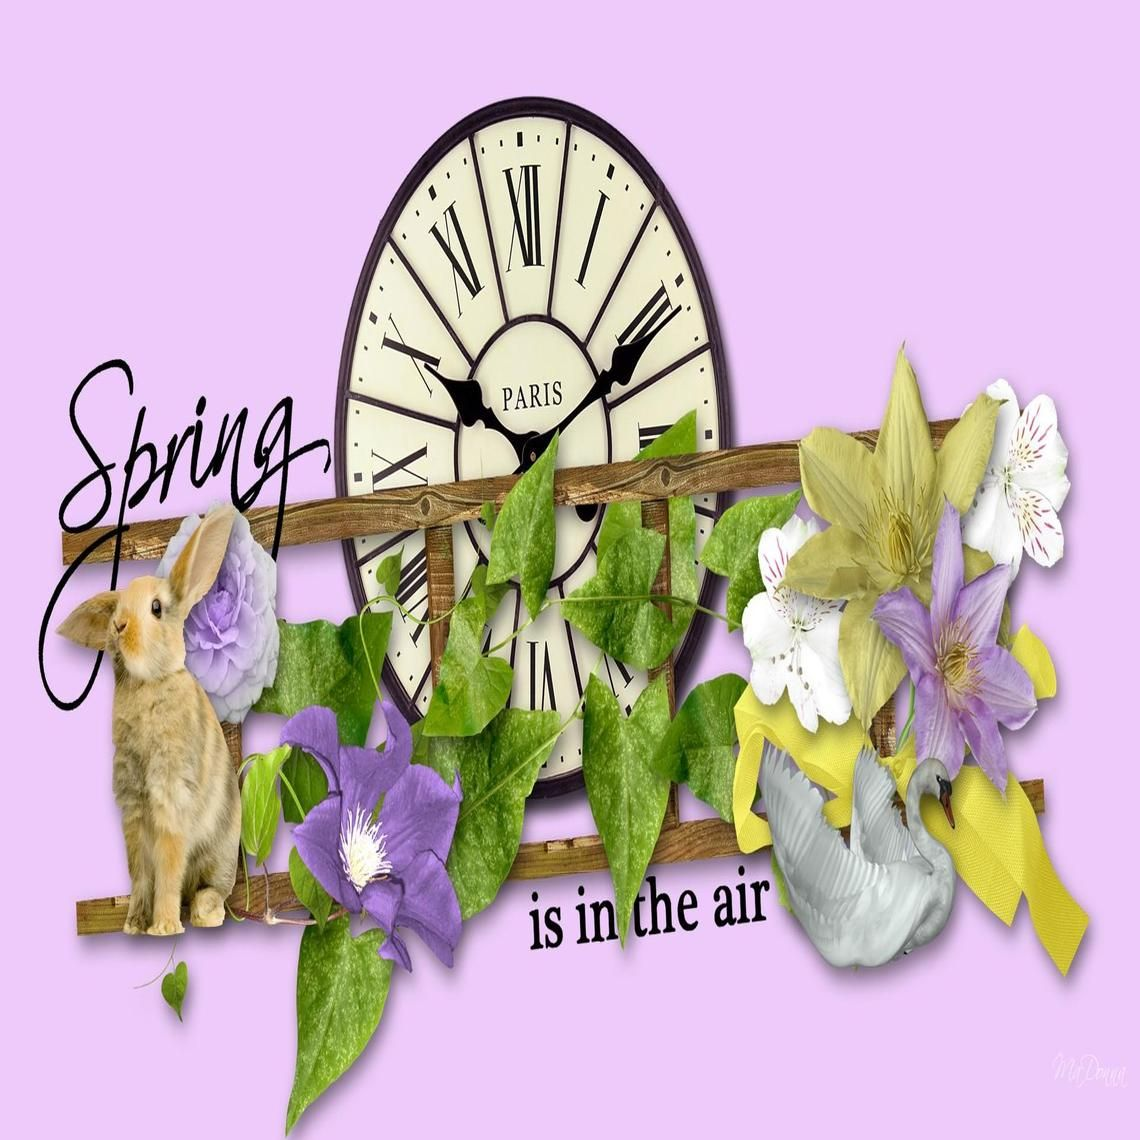 Spring in the Air